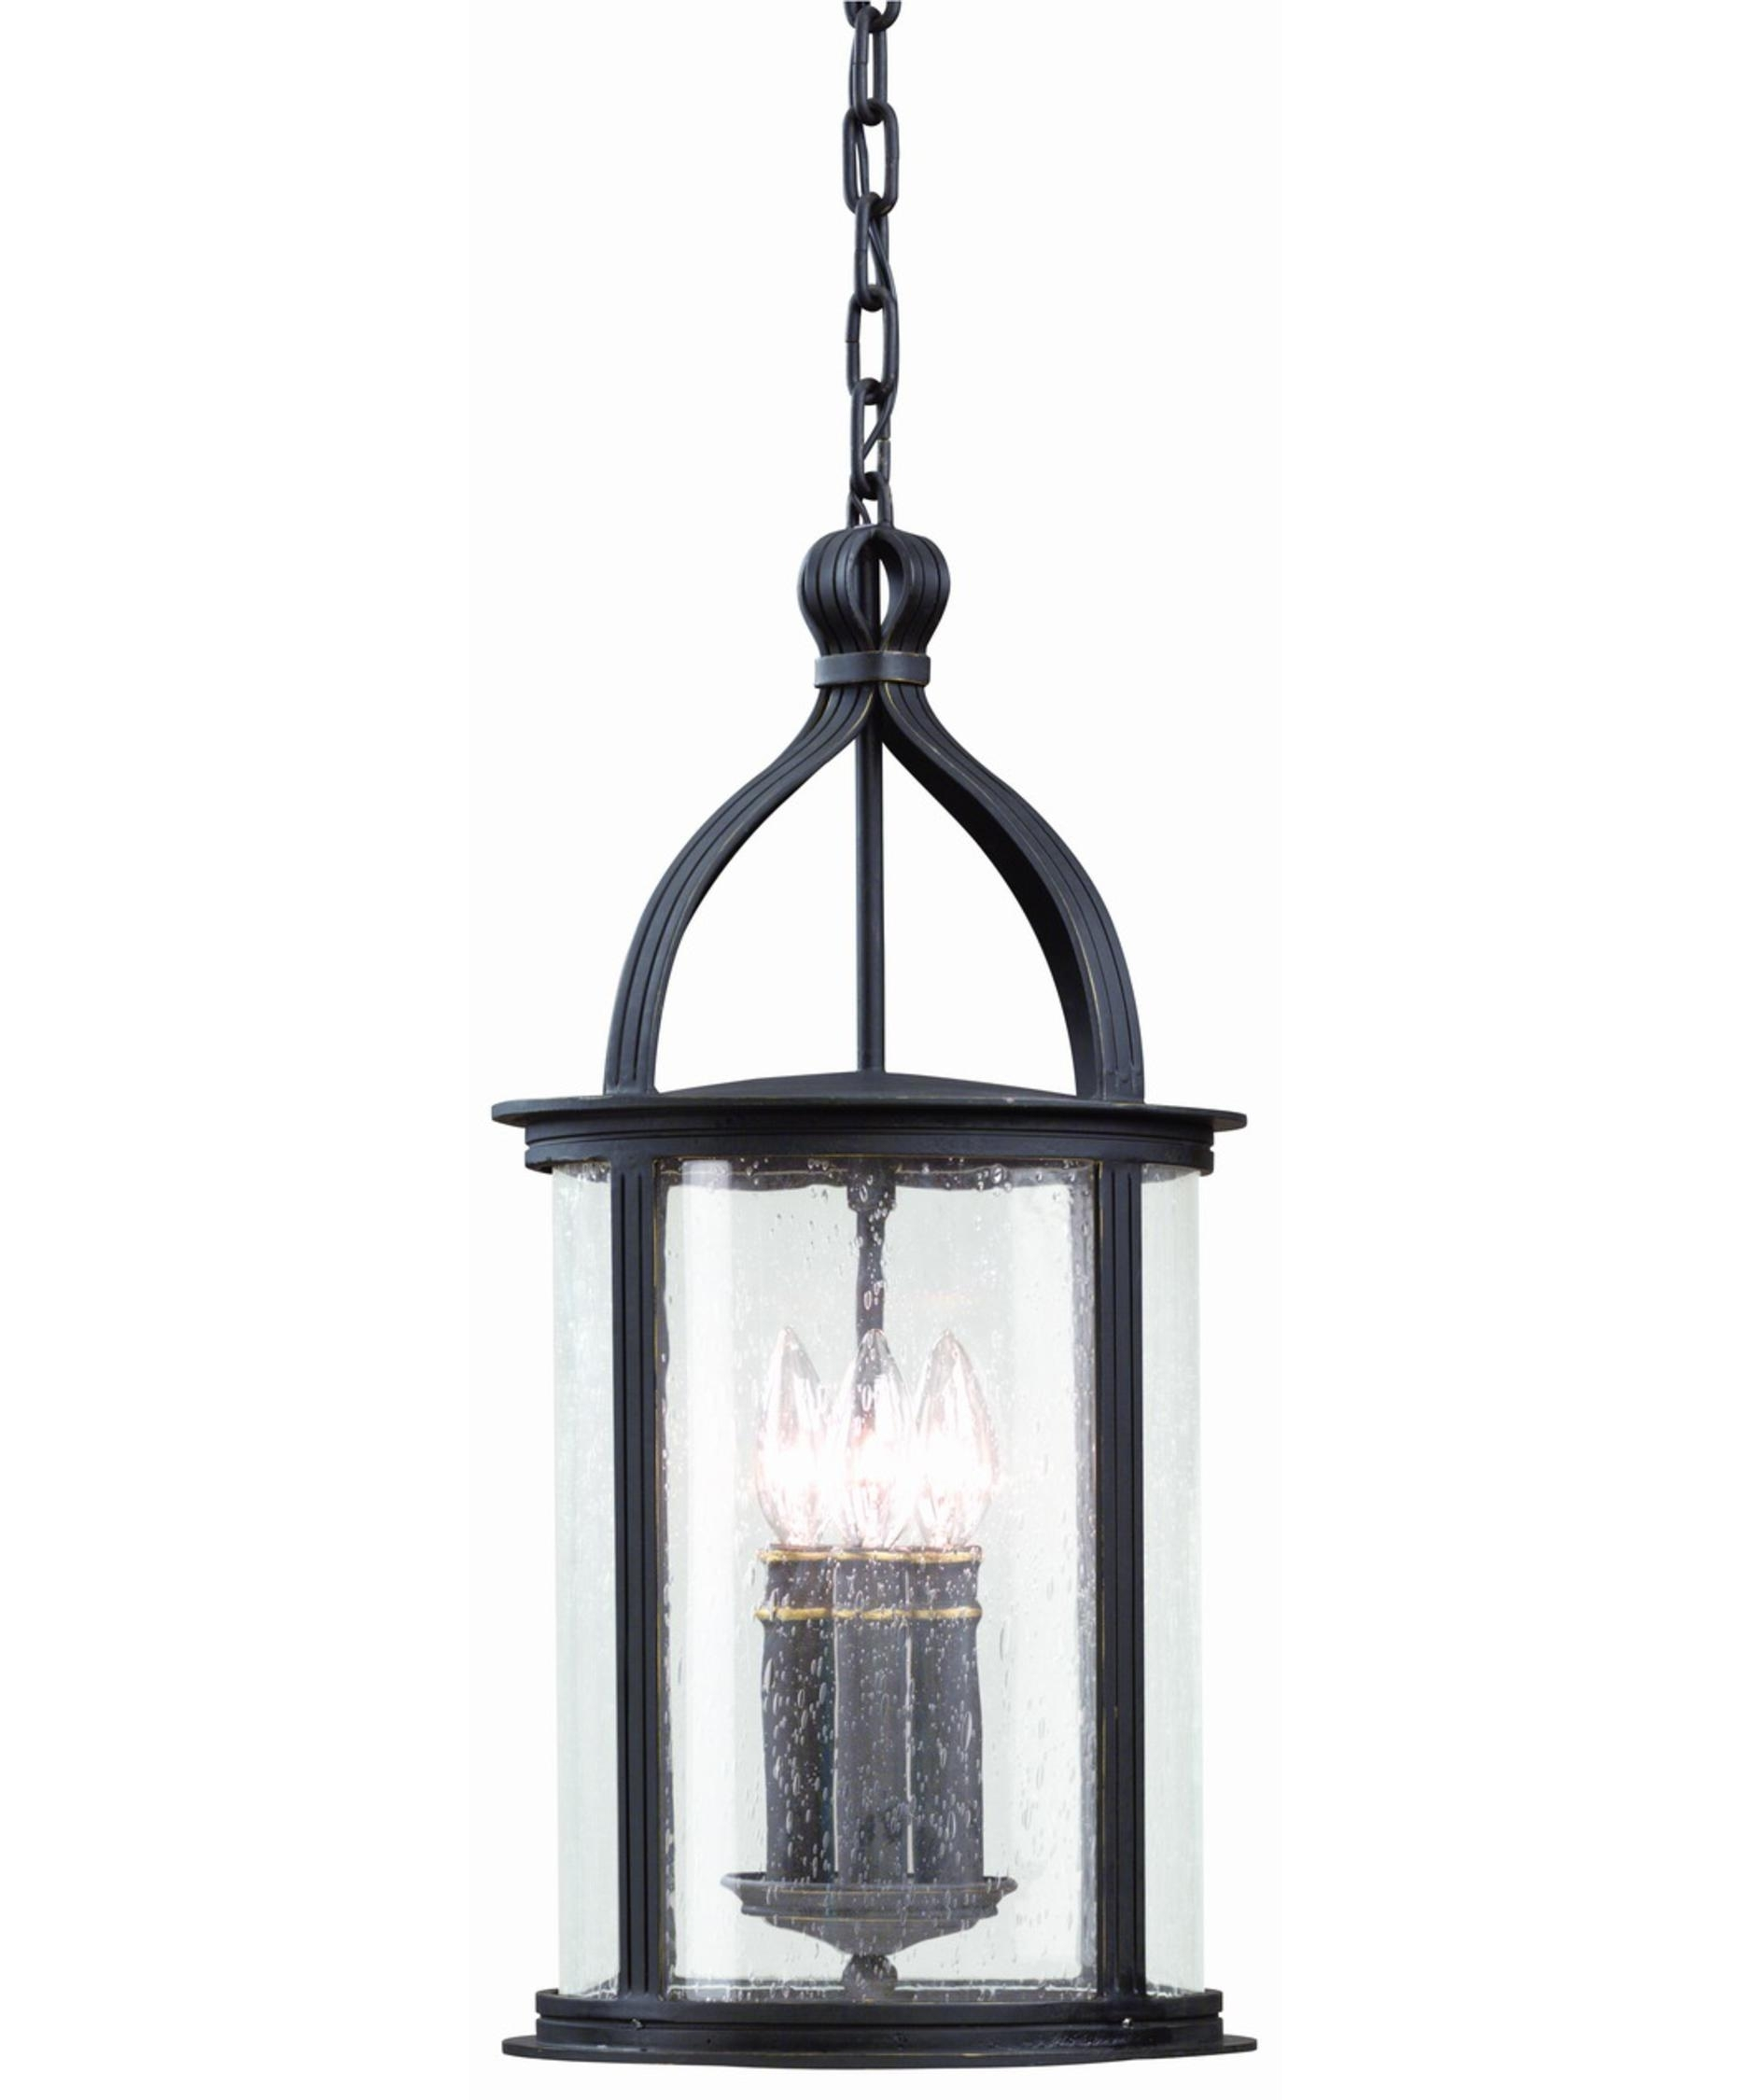 Troy Lighting F9476 Scarsdale 10 Inch Wide 3 Light Outdoor Hanging within Outdoor Glass Lanterns (Image 19 of 20)